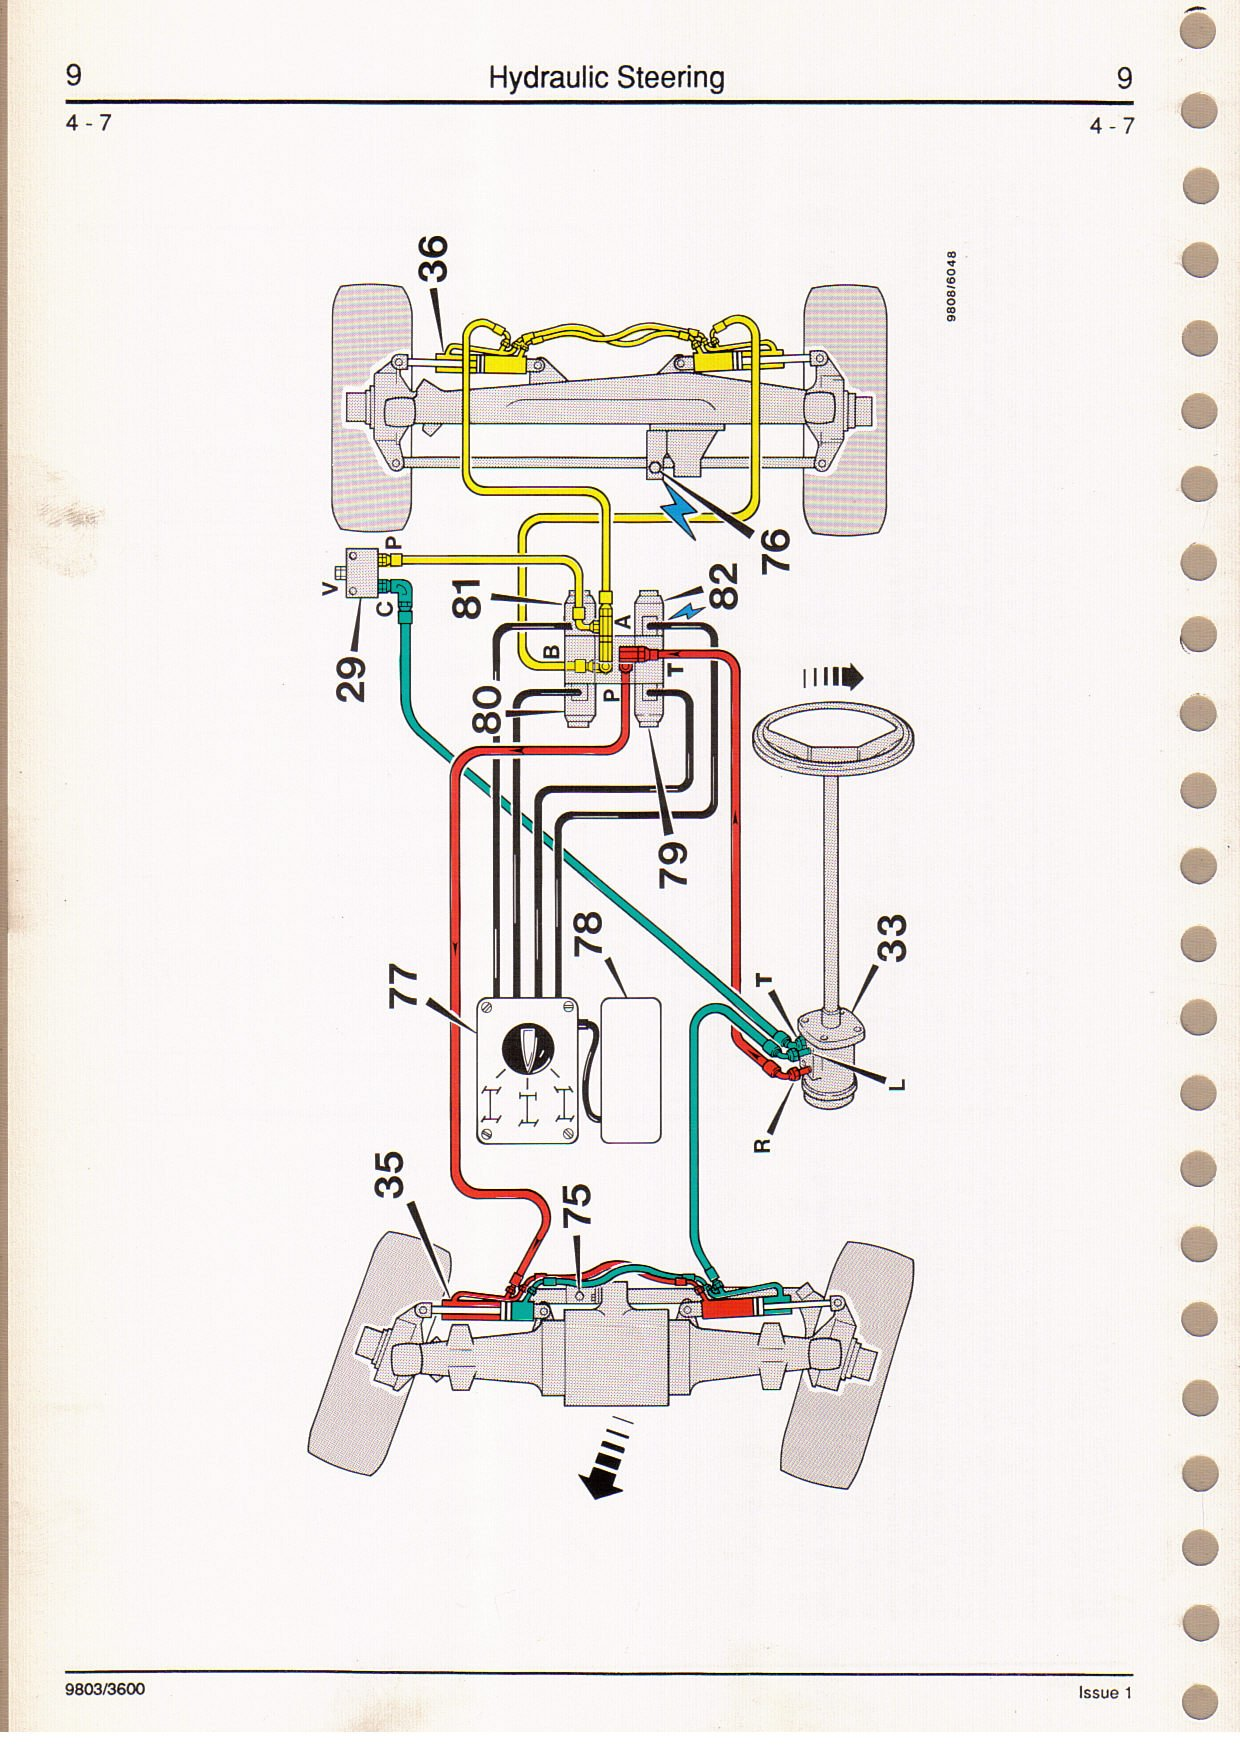 DIAGRAM] 520 Jcb Wiring Diagram FULL Version HD Quality Wiring Diagram -  LOST-DIAGRAM.EXPERTSUNIVERSITY.ITDiagram Database - Expertsuniversity.it